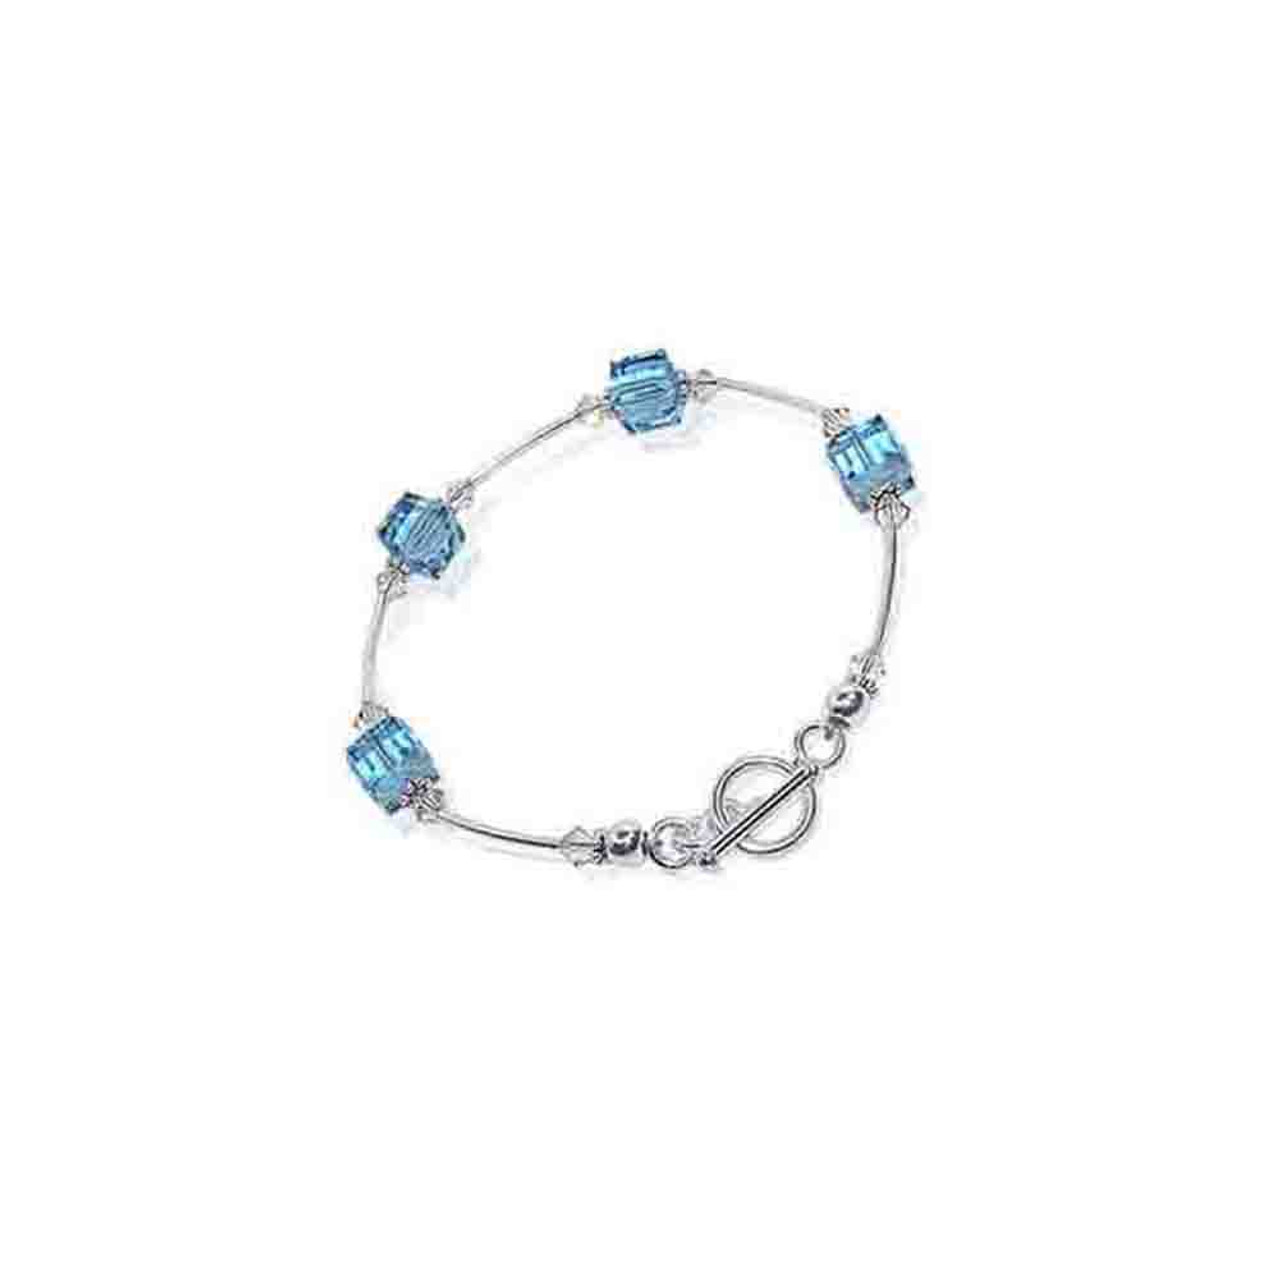 Cube Shaped Swarovski Elements Blue Crystal 7.5 inch Bracelet